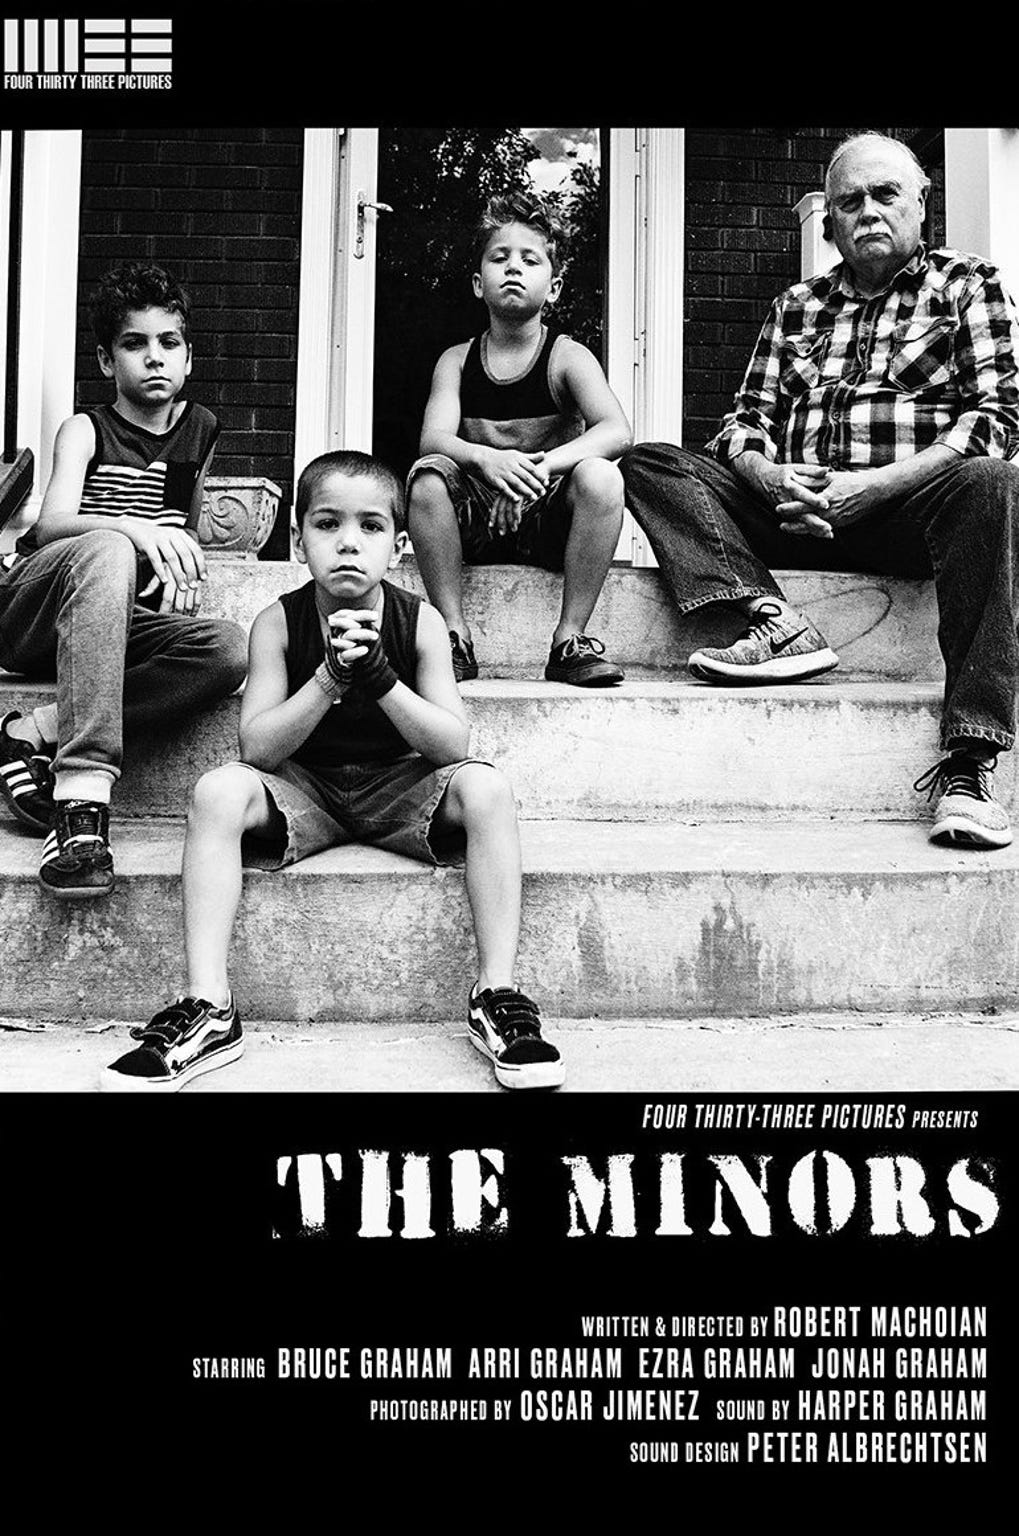 """The Minors"" is one of 30 films that will be screened this weekend at the 24fps International Short Film Festival at the Paramount Theatre. From the United States, it is the first film scheduled Saturday afternoon."